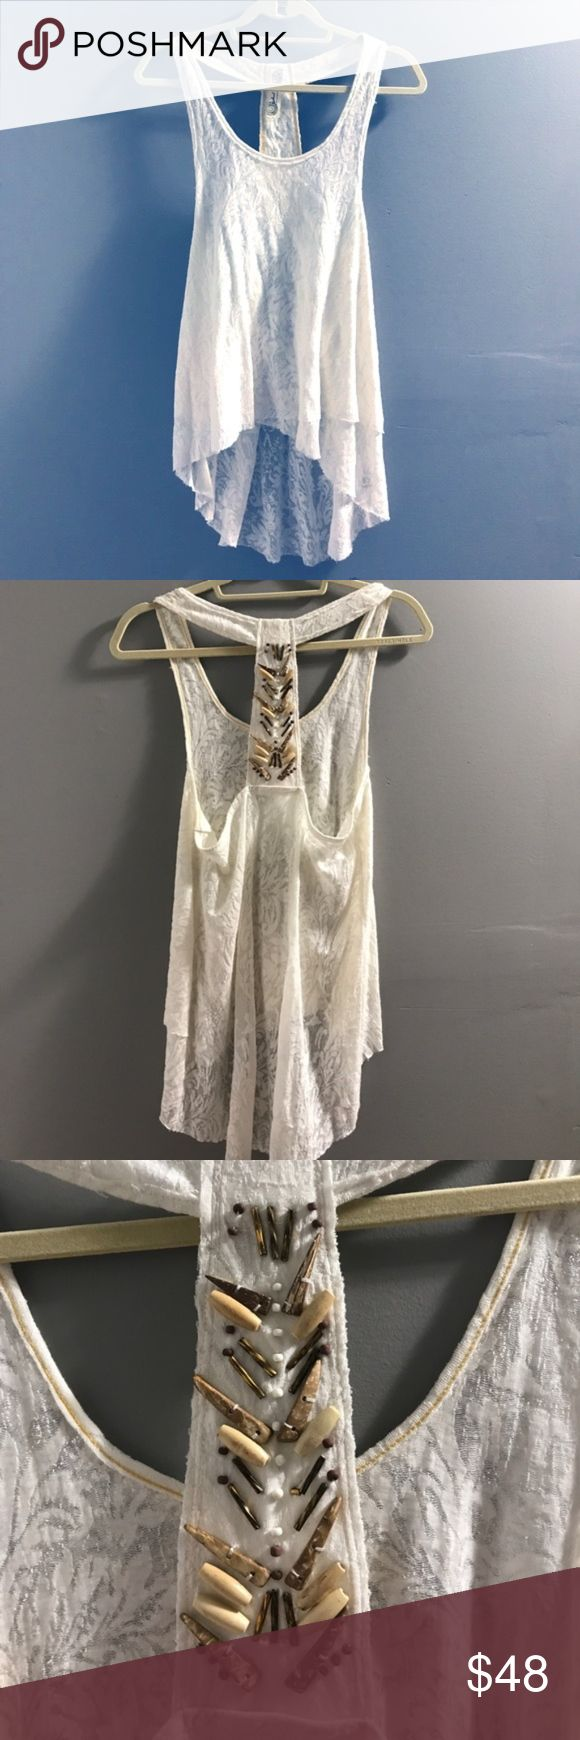 Free People Layered Racerback Top Semi-sheer FP tank so cute with neutral or colored bandeau/bralette. Racerback with simple beading. A true must have! Free People Tops Tank Tops